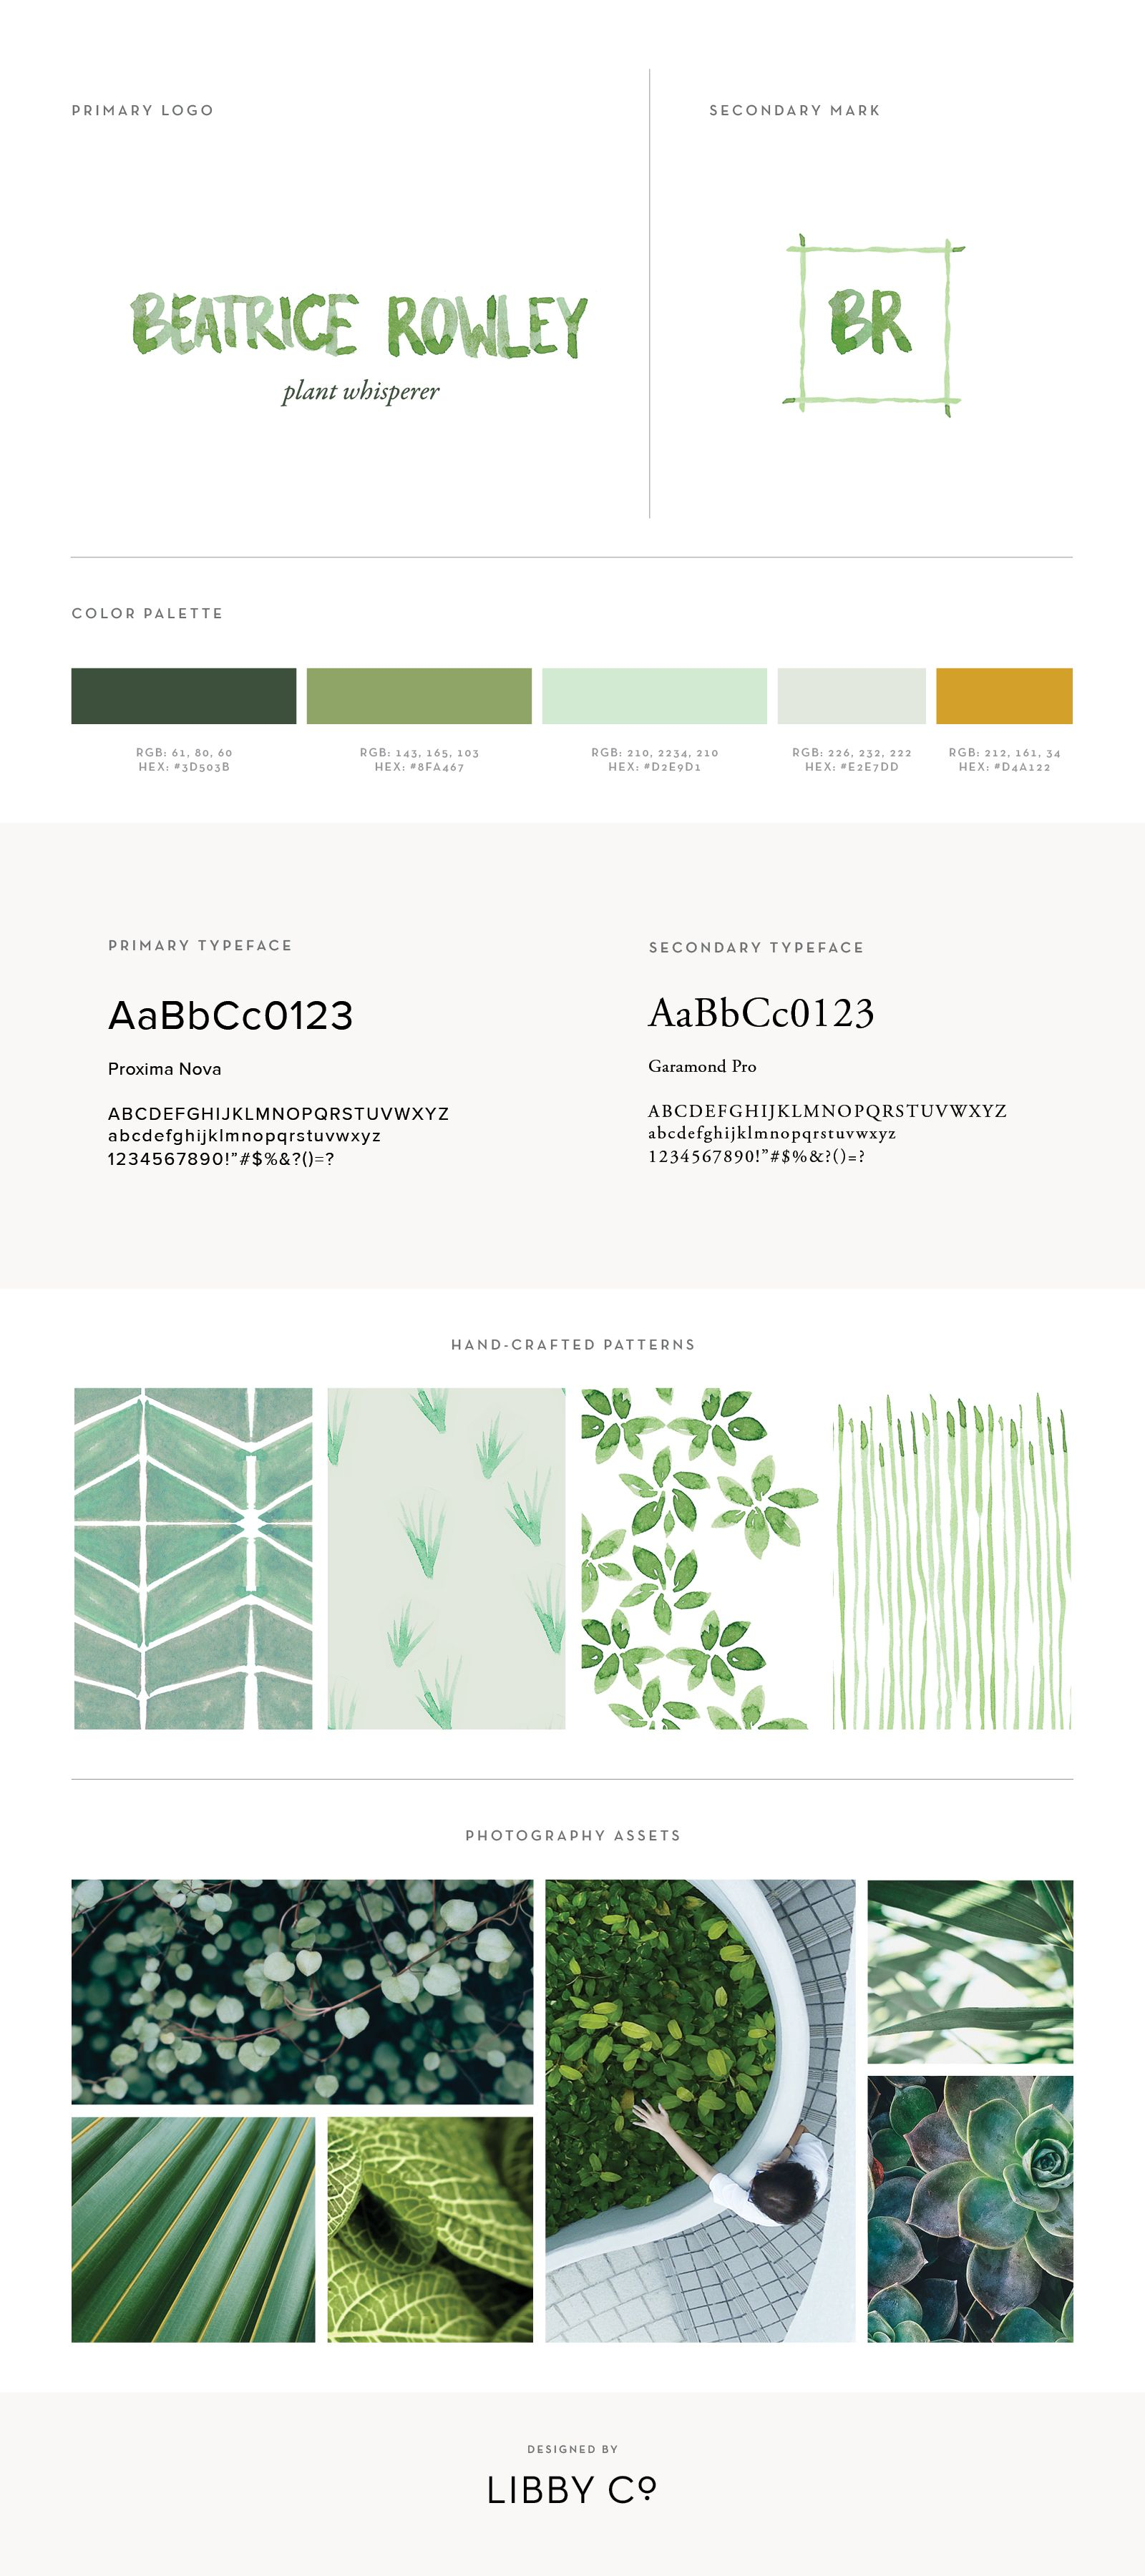 Free Brand Style Guide Template Branding Pinterest Brand Style